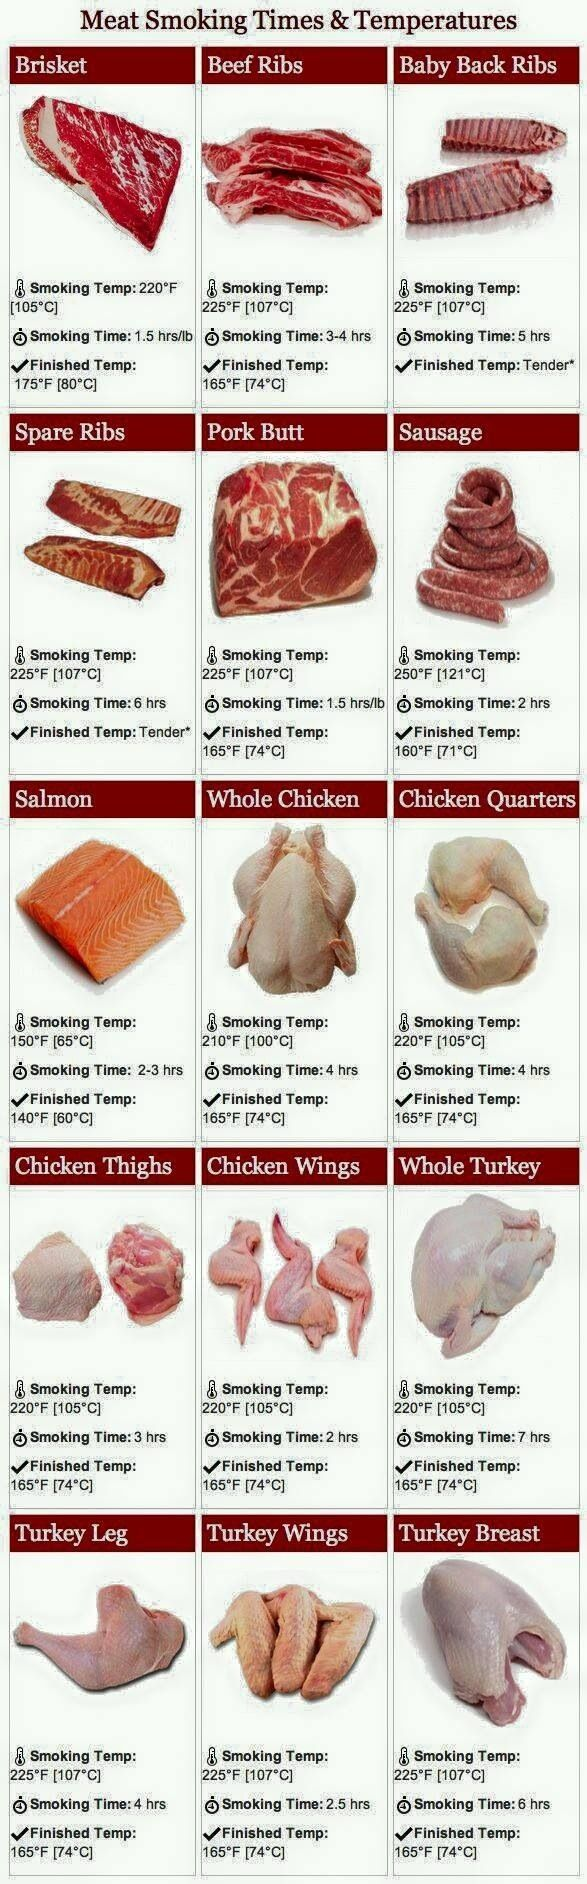 Meat Smoking: temperature & time